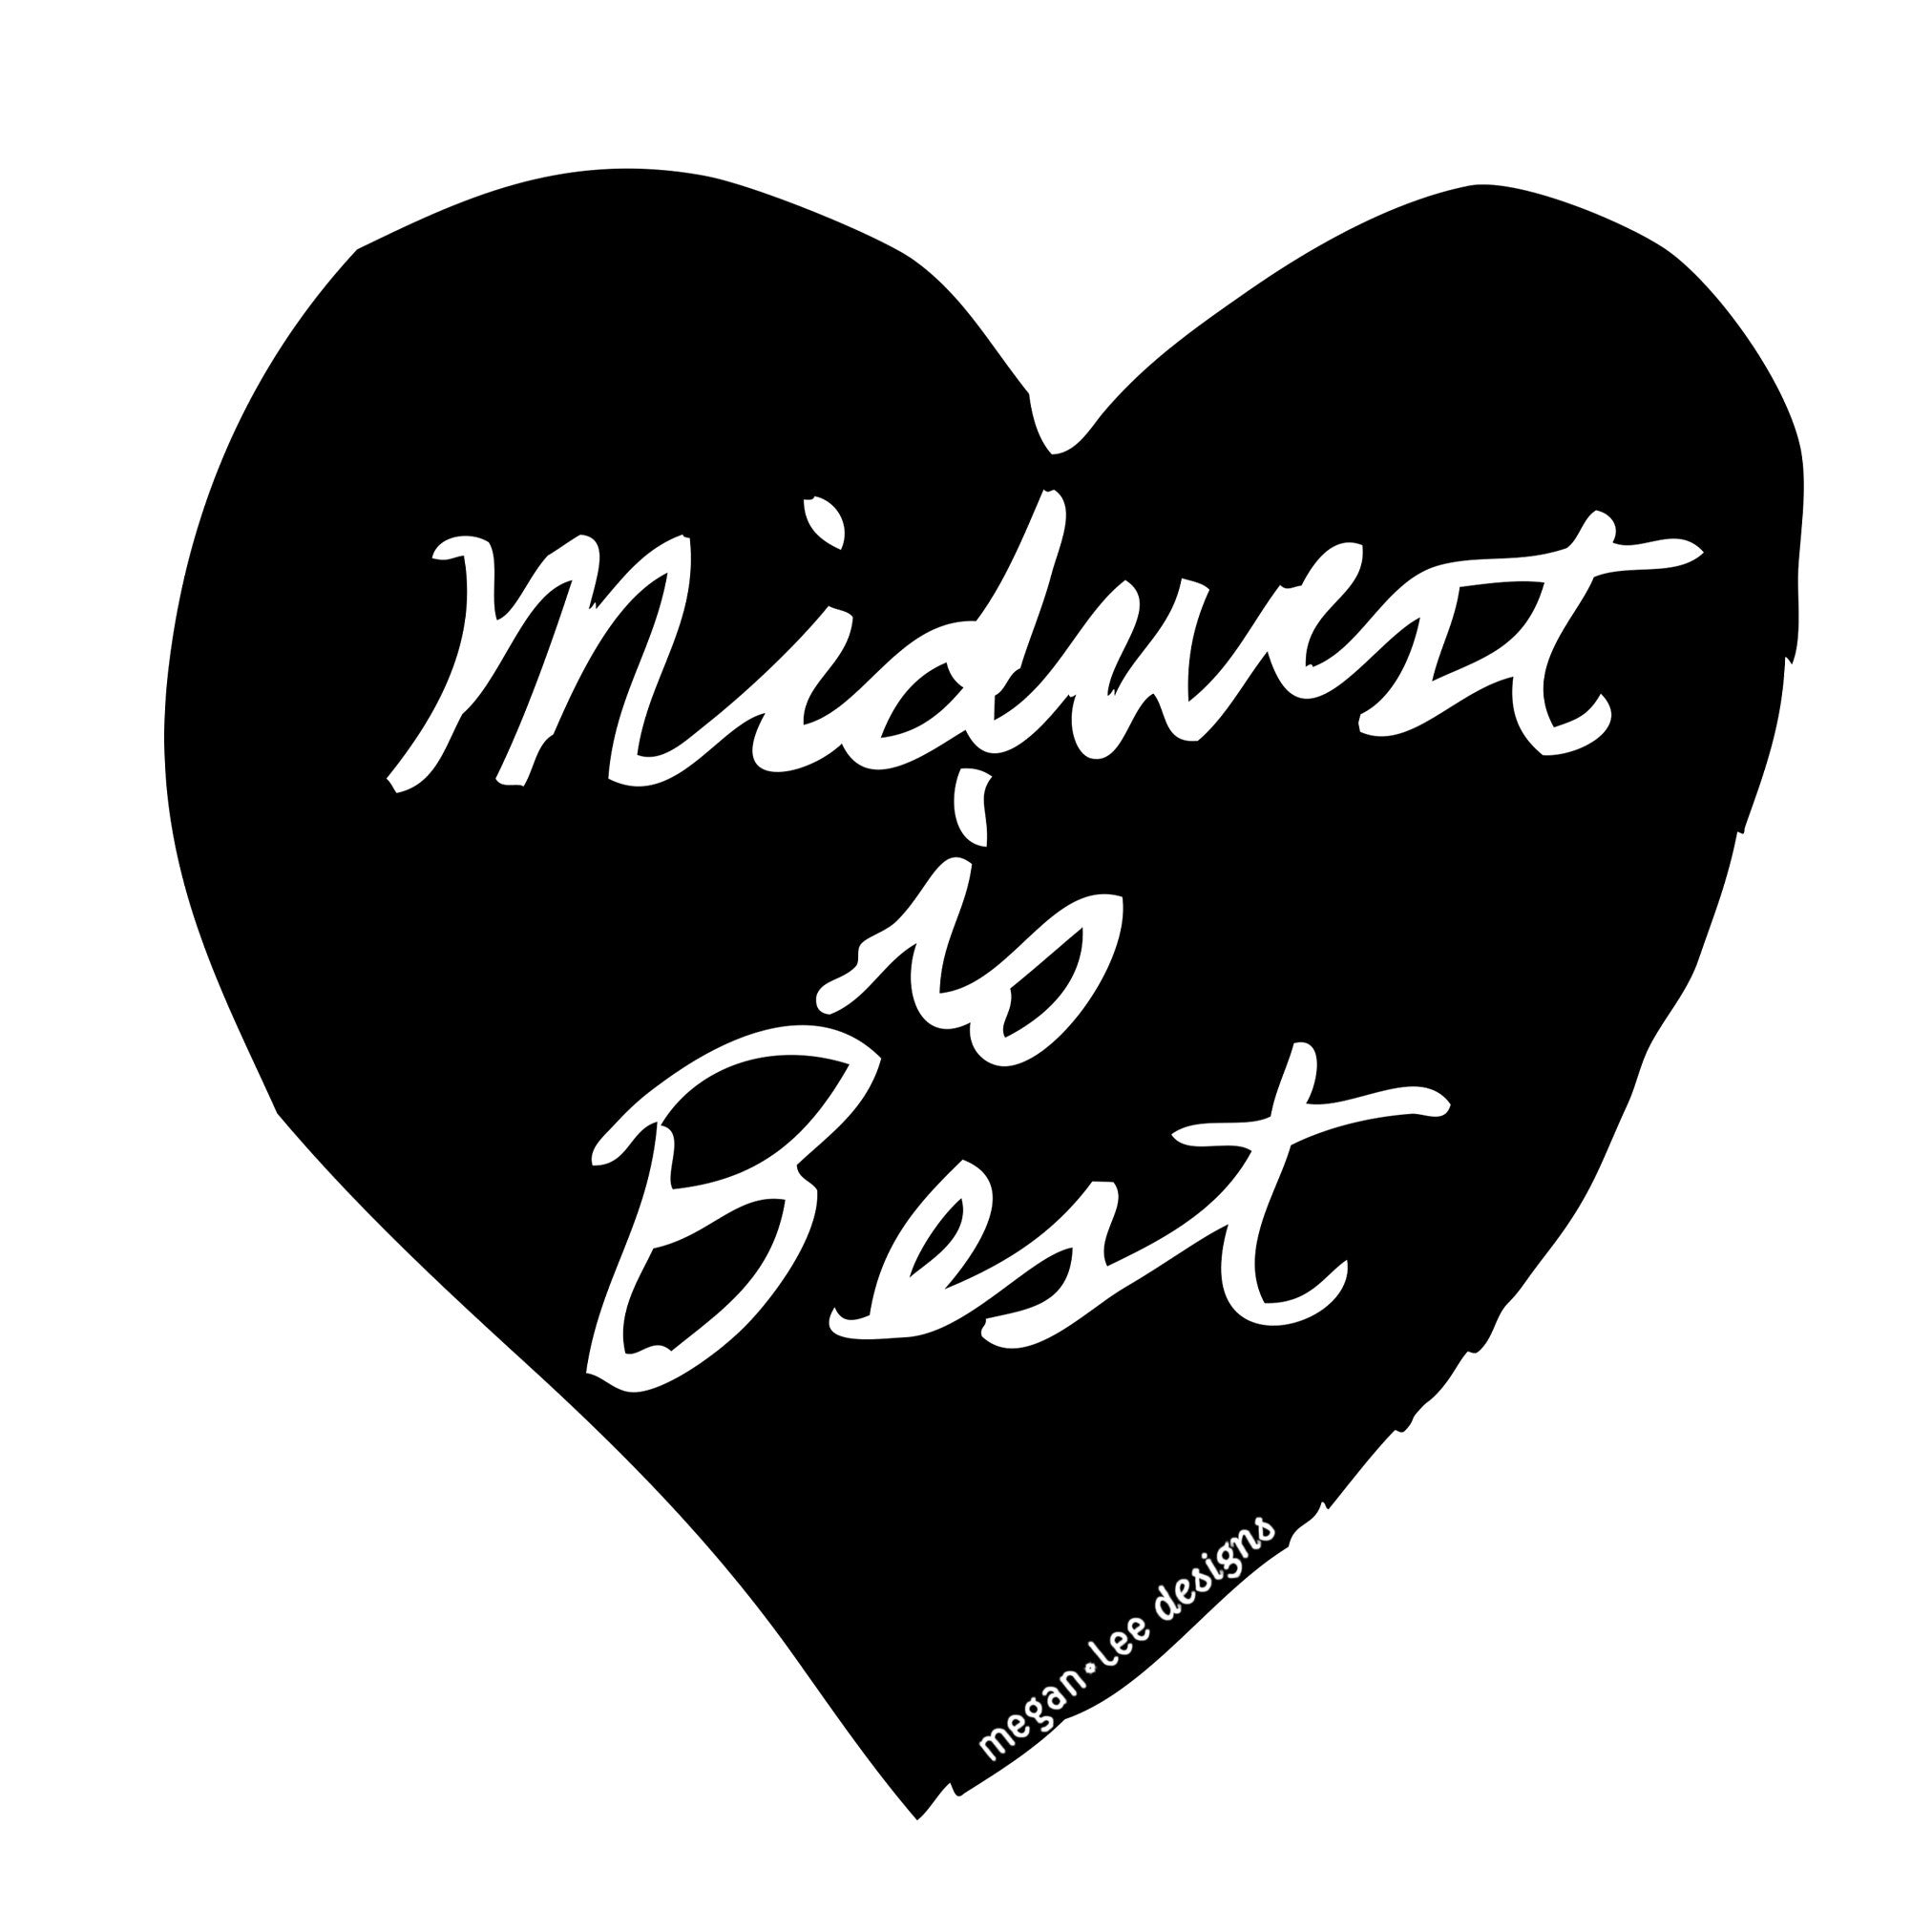 Midwest is Best pattern by Megan Lee Designs